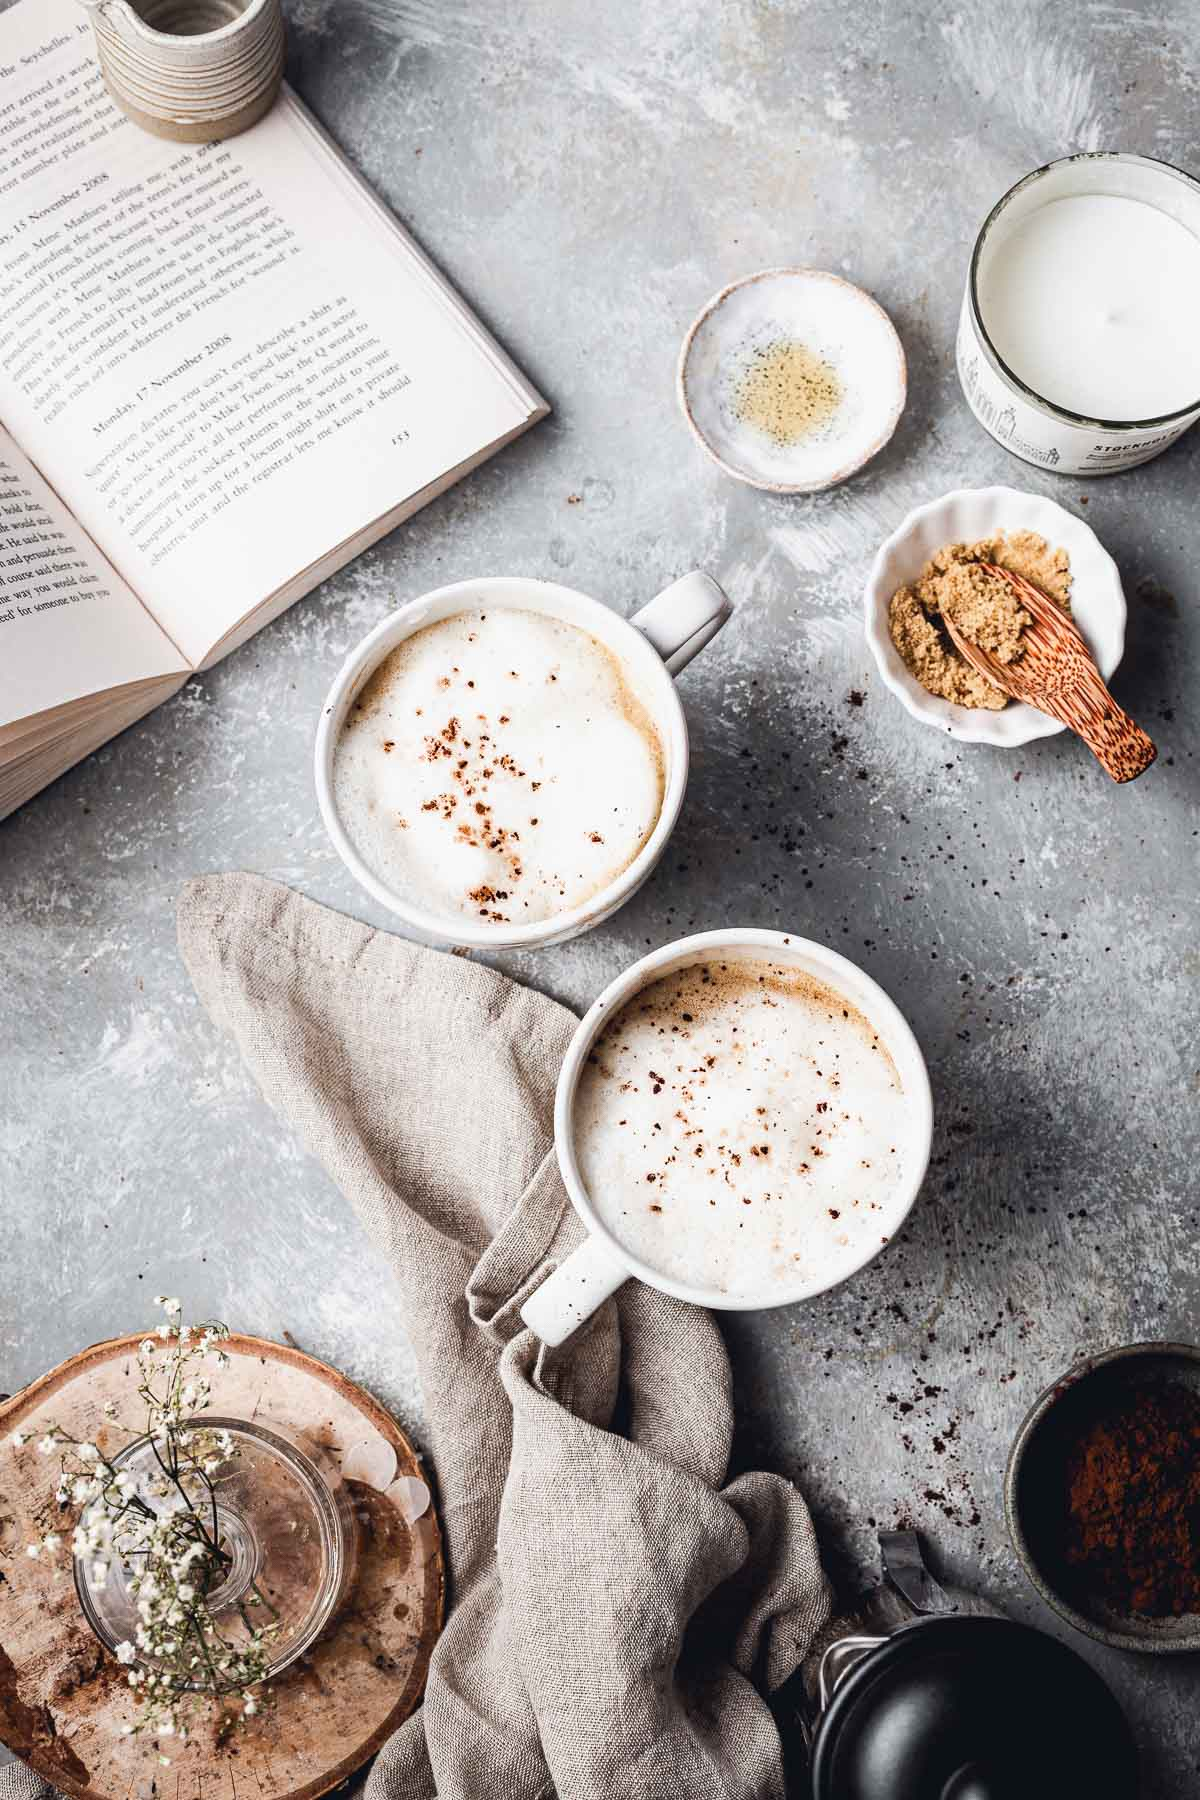 An overhead view of a table with two latte mugs, book and various props laid around it.